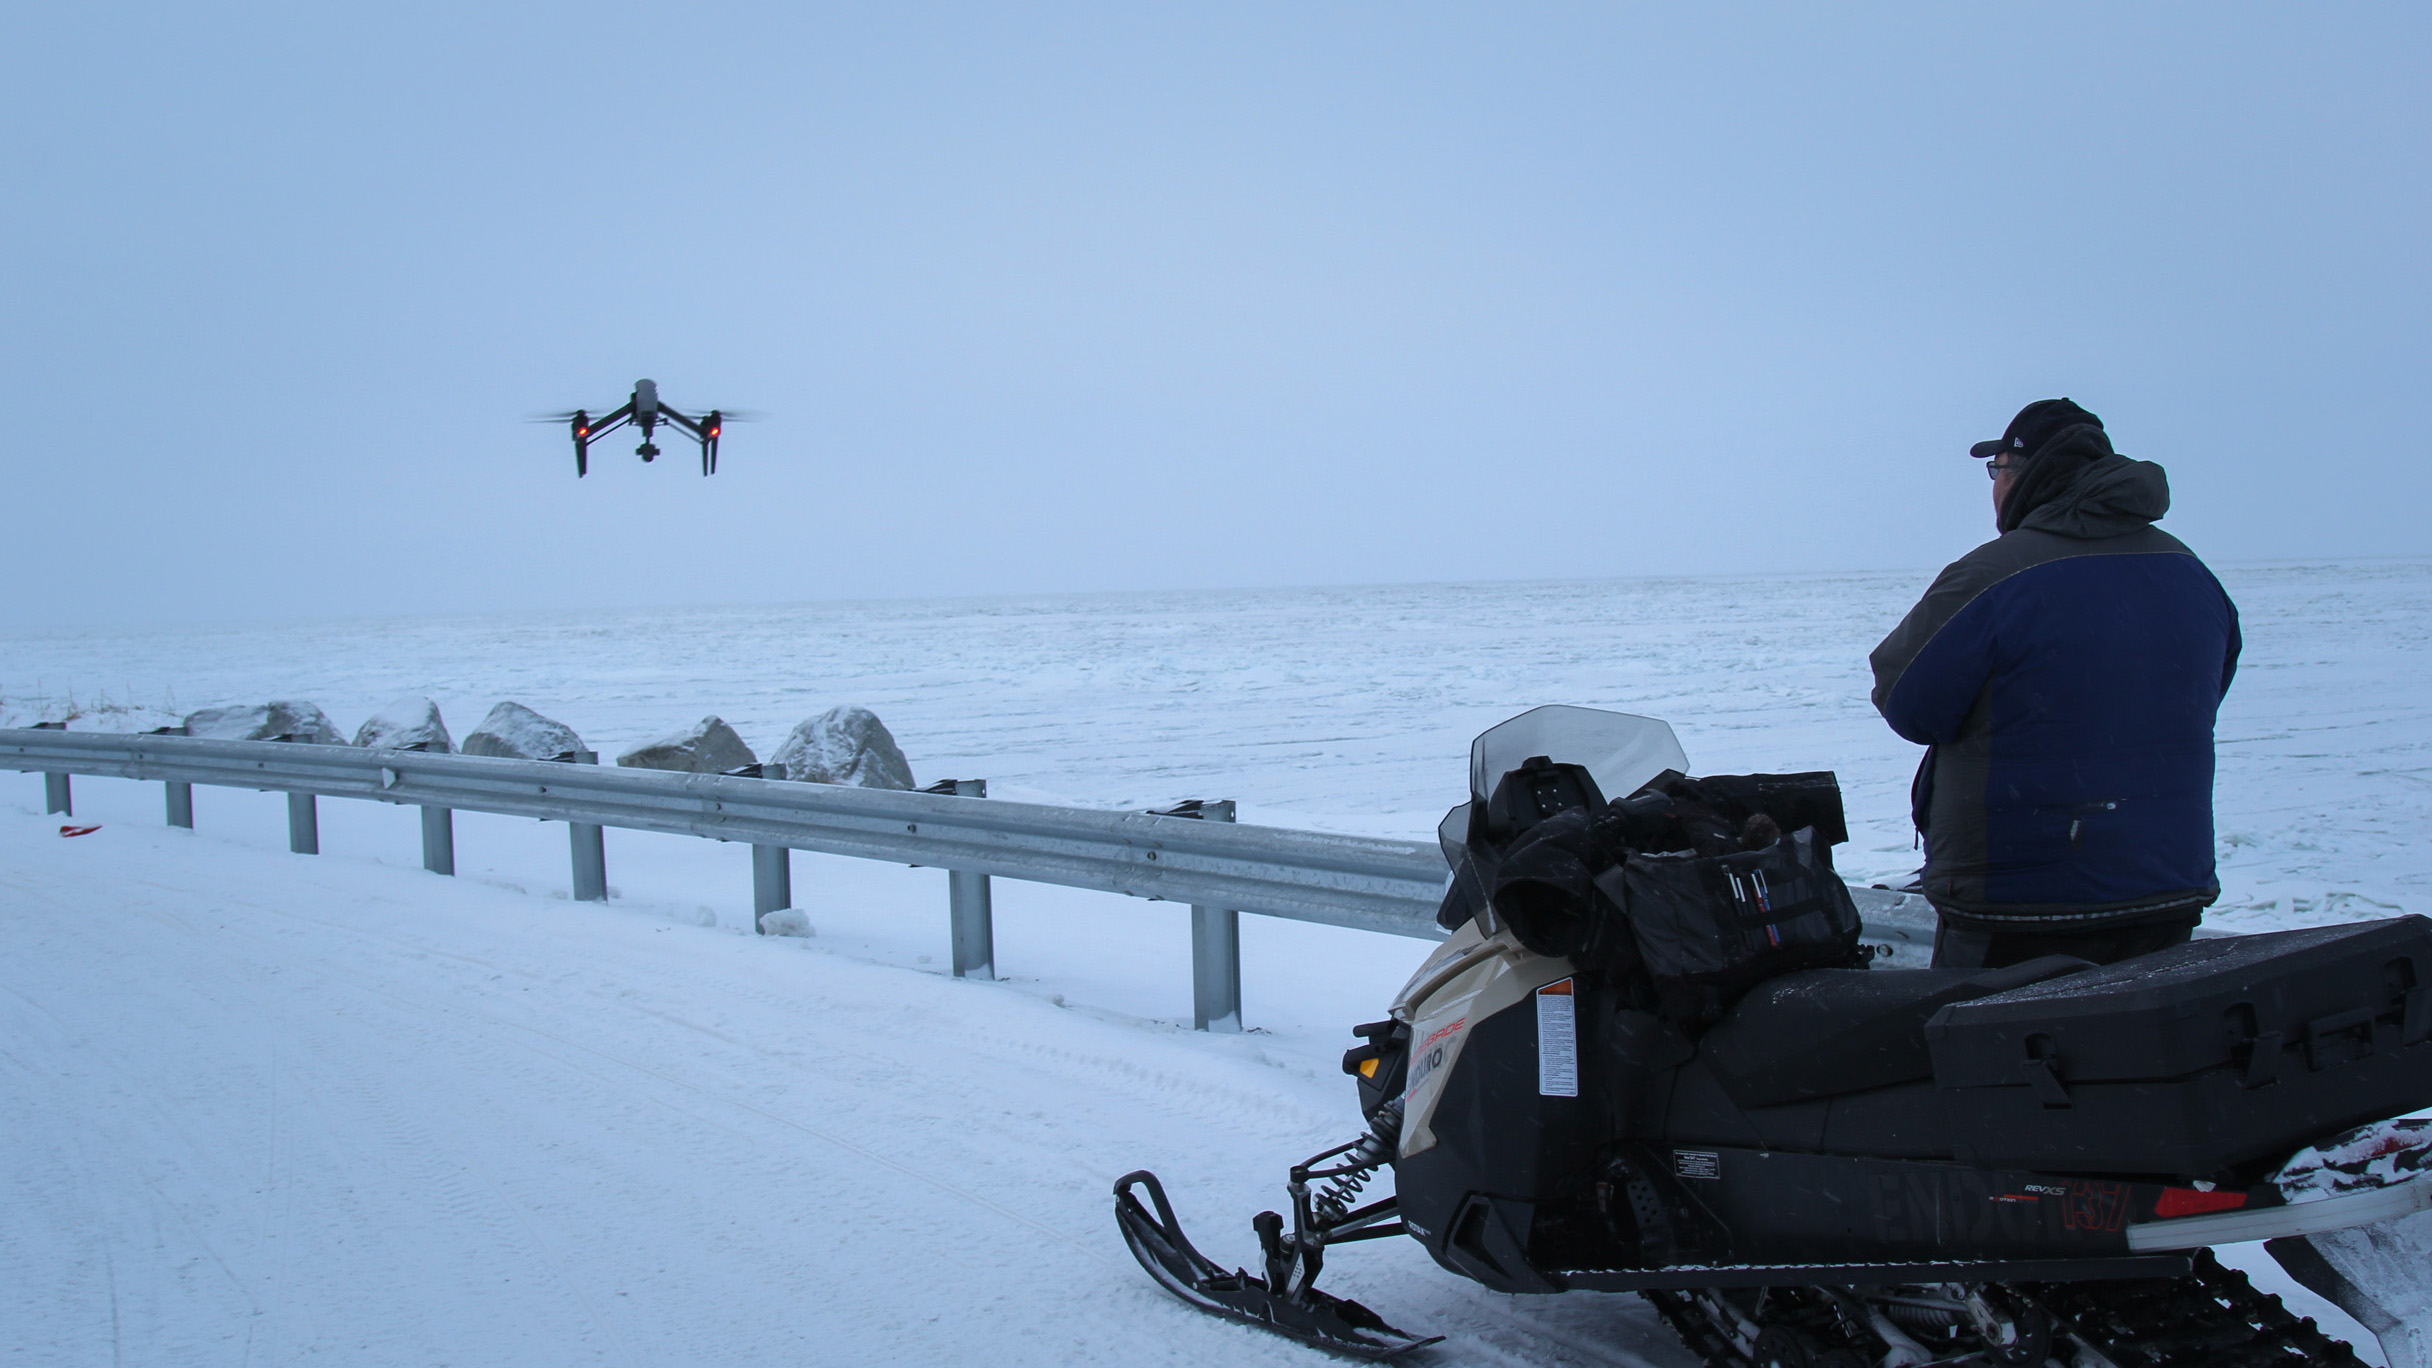 Subsistence hunter Dennis Davis sends his drone out over the ice on the Chukchi Sea in Shishmaref in far-western Alaska. Warming winters have made the sea ice here more dangerous to navigate in search of seals and walruses, but drones can help map the bes